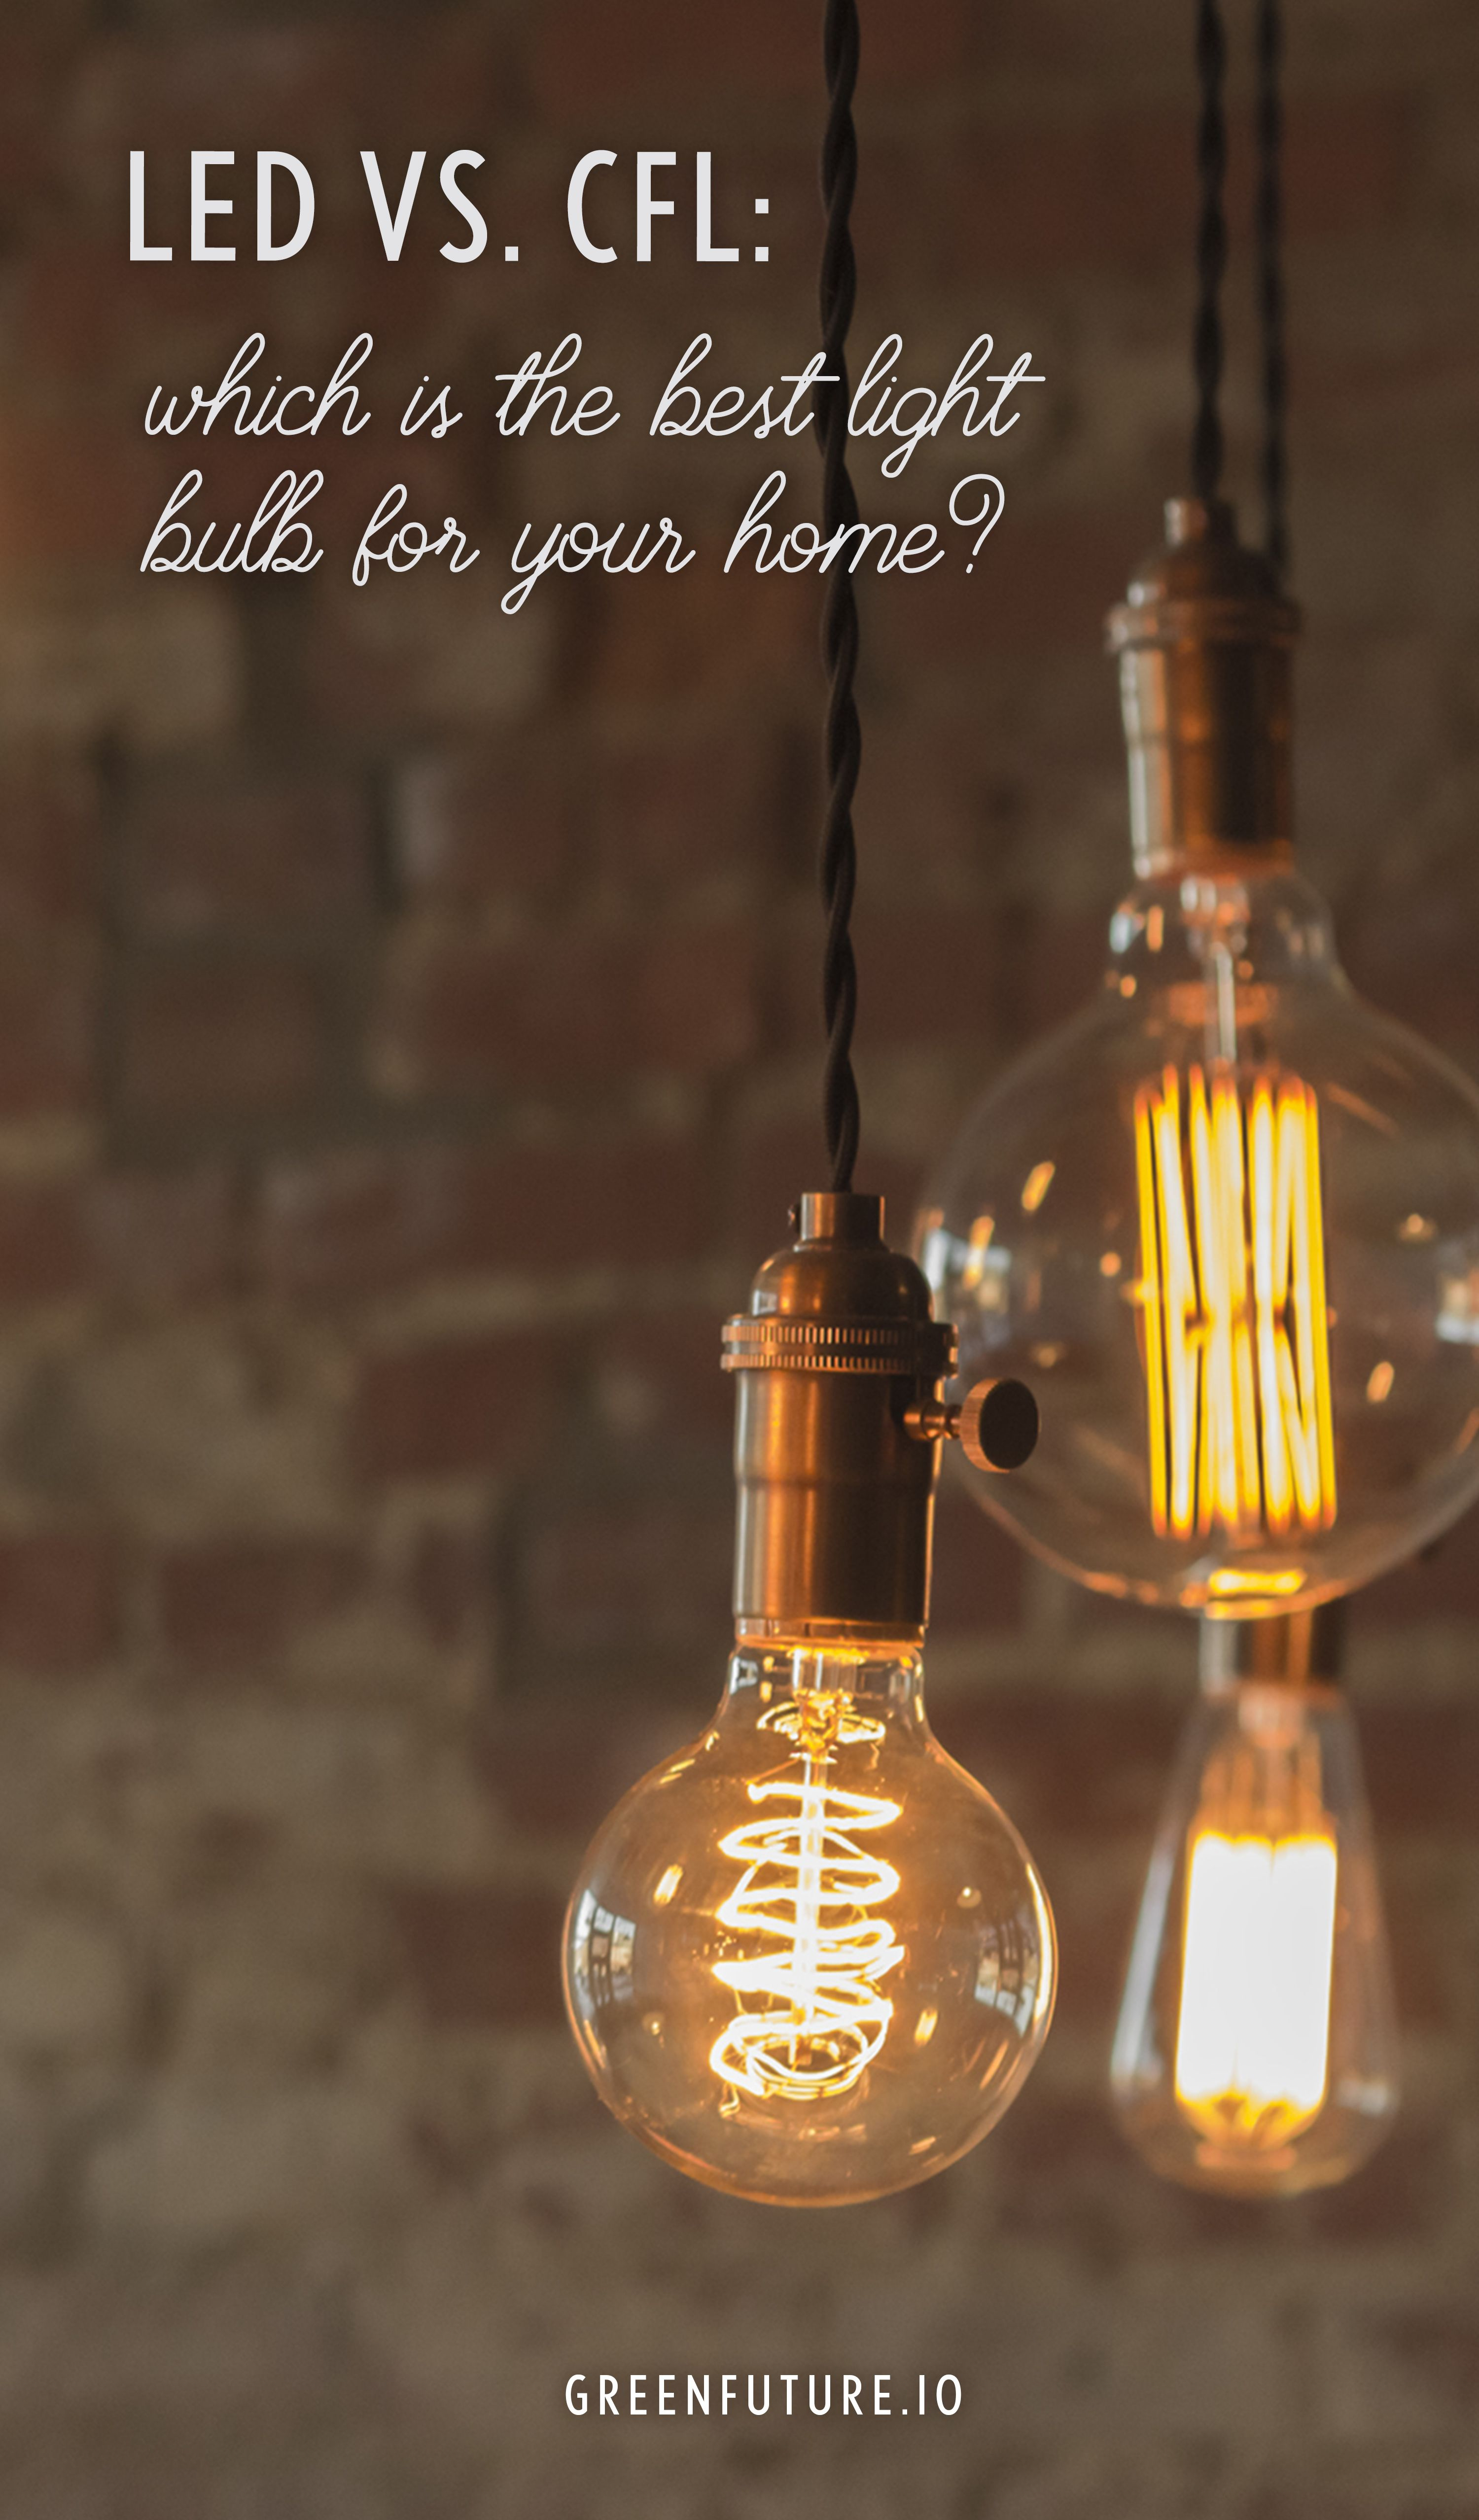 For over 100 years, there was only 1 way to light your home: the incandescent lightbulb.  But in the '90s, consumers started to have options at their local Home Depot's lighting section. And considering that modern bulbs can last for years, it became more important than ever to make the right decision.   This guide will help you make sense of the two most popular types of eco-friendly bulbs today: compact fluorescent light (CFL) bulbs and light-emitting diode (LED) bulbs.